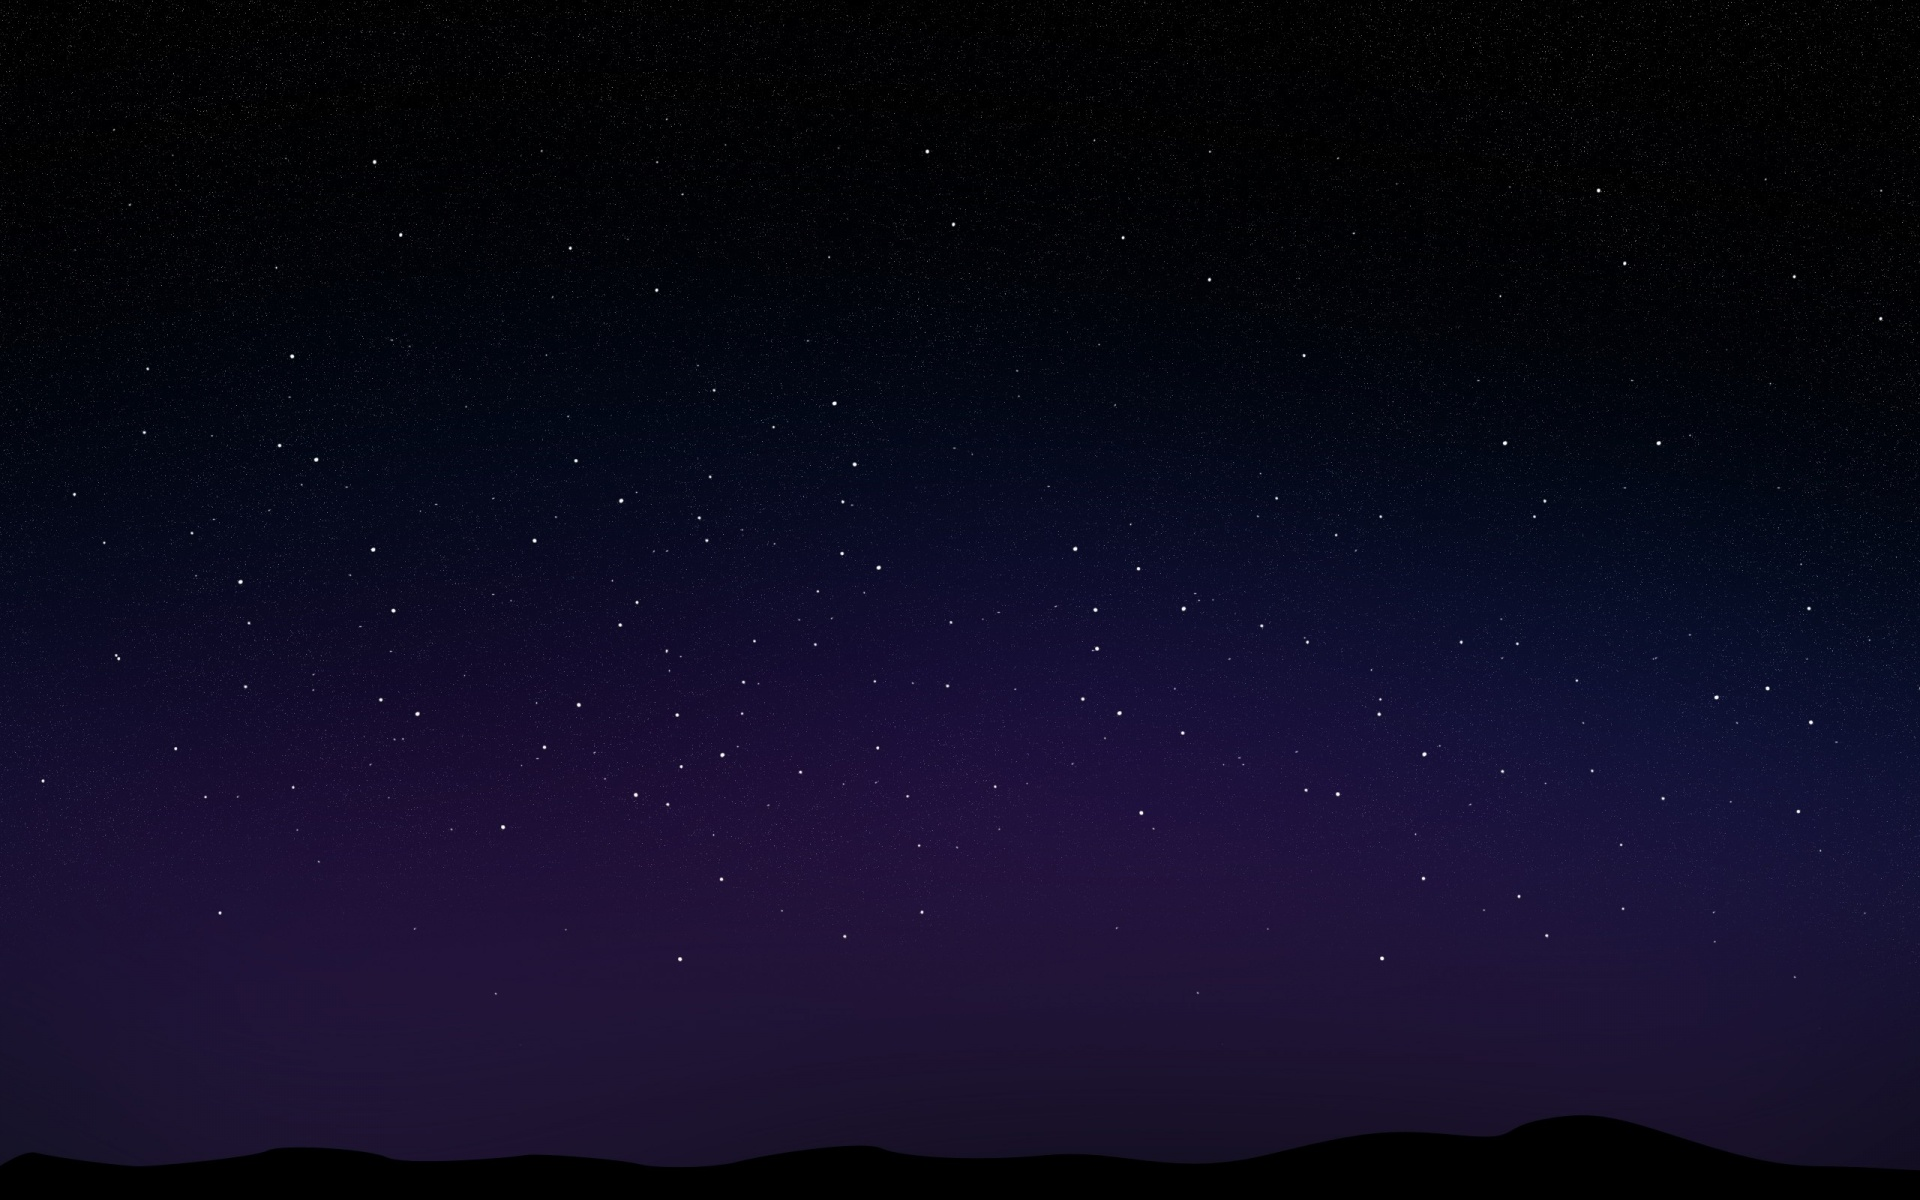 1920x1200 starry night sky desktop pc and mac wallpaper